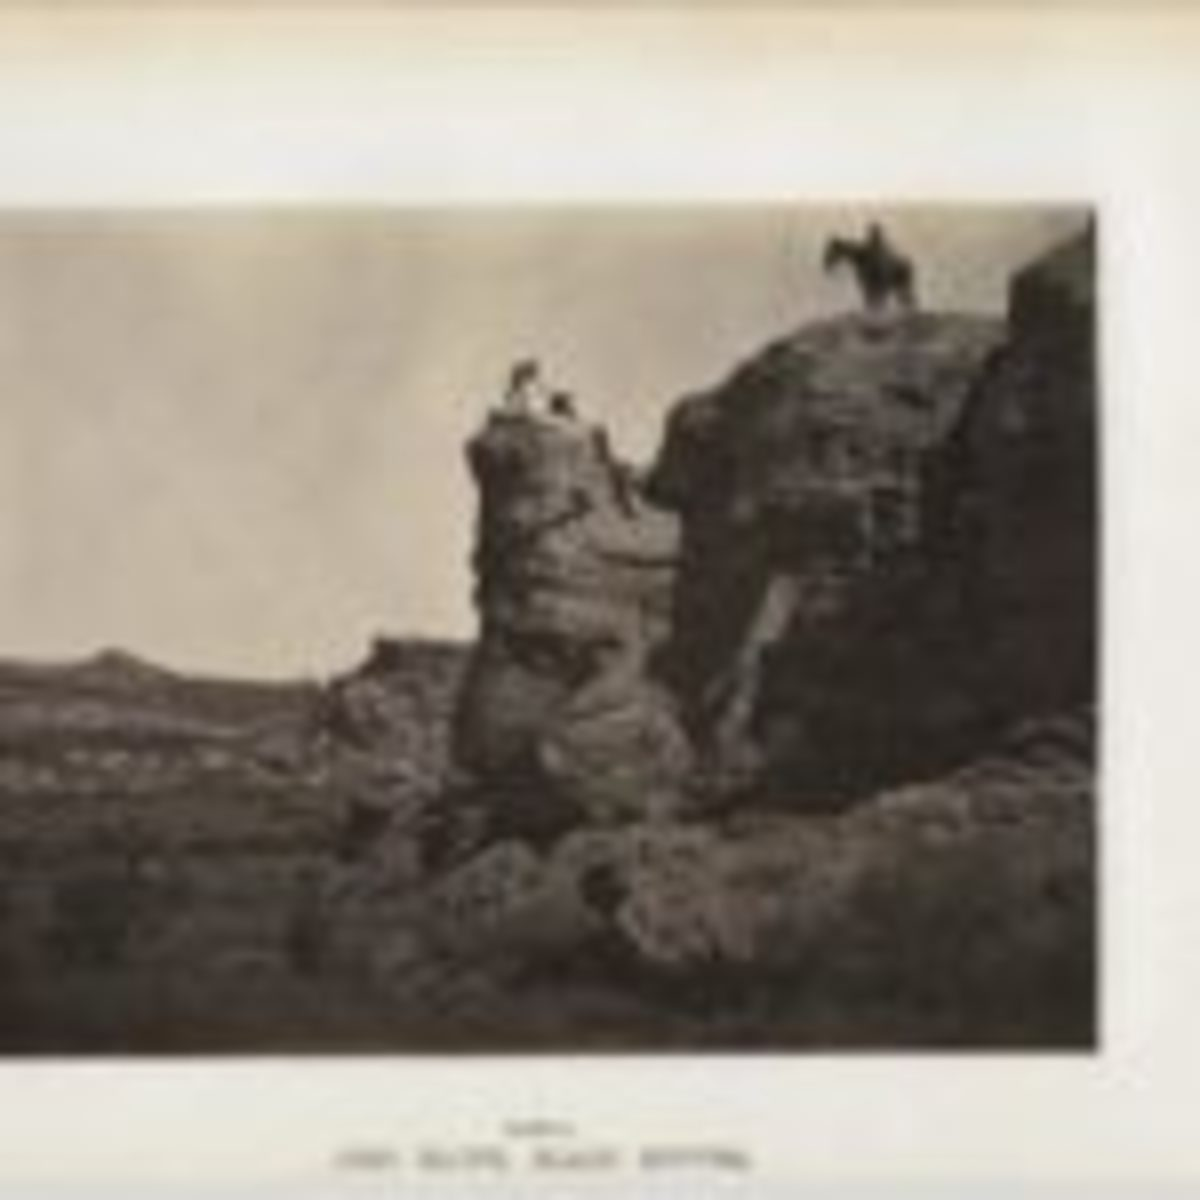 "One of Andrew Russell's photographs from ""The Great West Illustrated."" High Bluff Rock in the Black Buttes in Wyoming, was an extraordinary rock formation found along the route of the transcontinental railroad. This photograph of High Bluff Rock was taken in 1869 and features people attempting to climb and traverse the impressive rock formation. Plate 21."